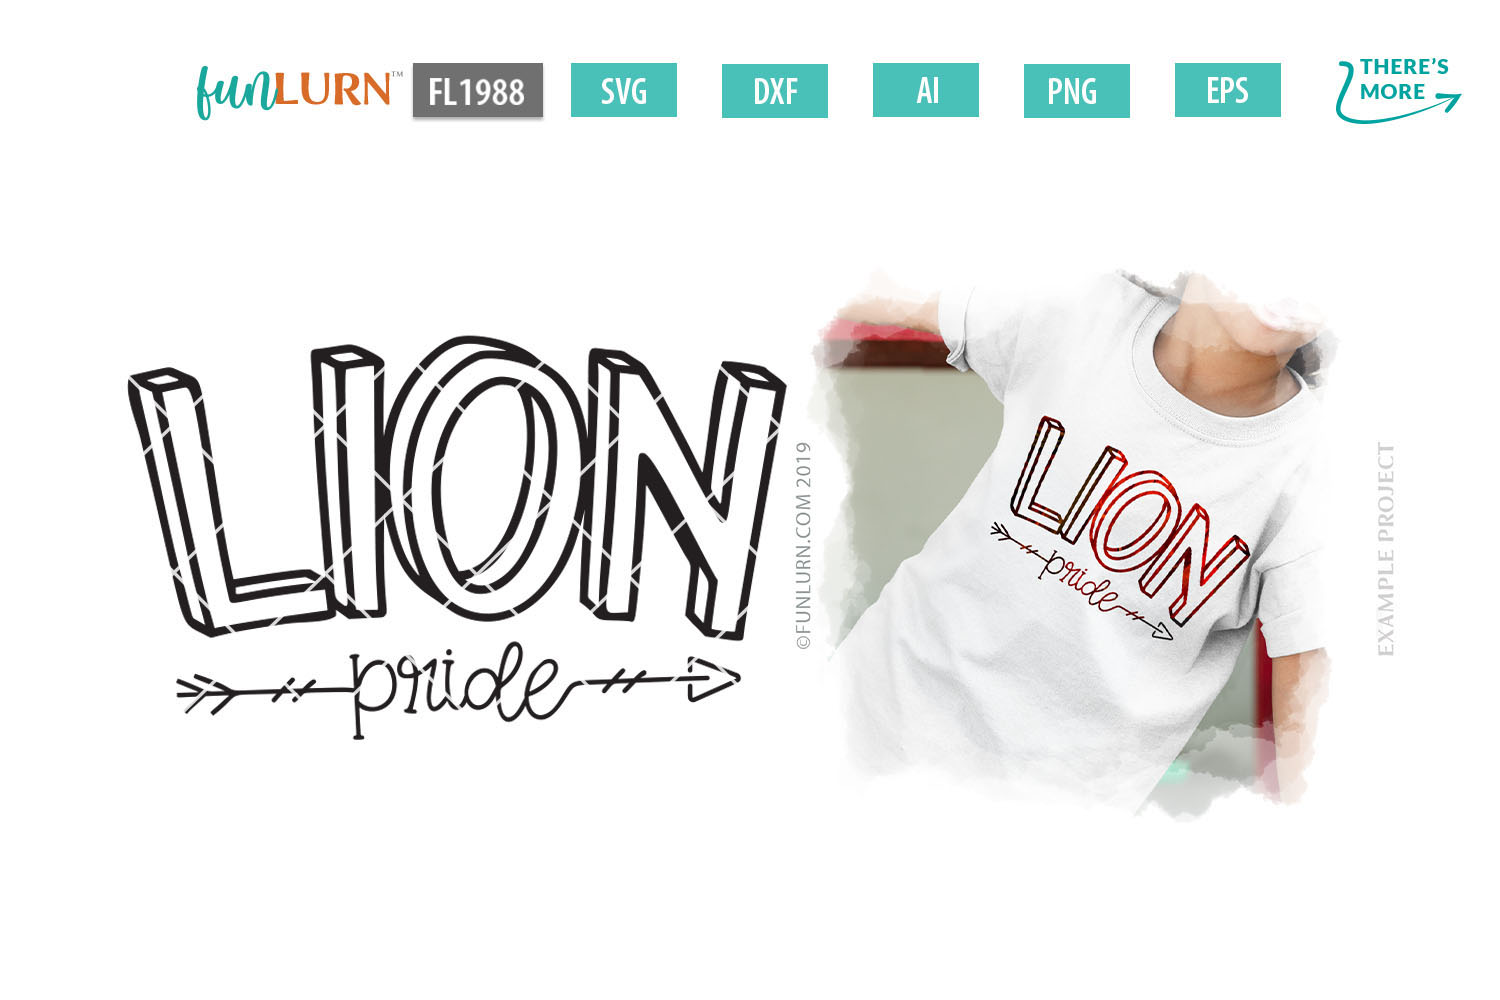 Lion Pride Team SVG Cut File example image 1